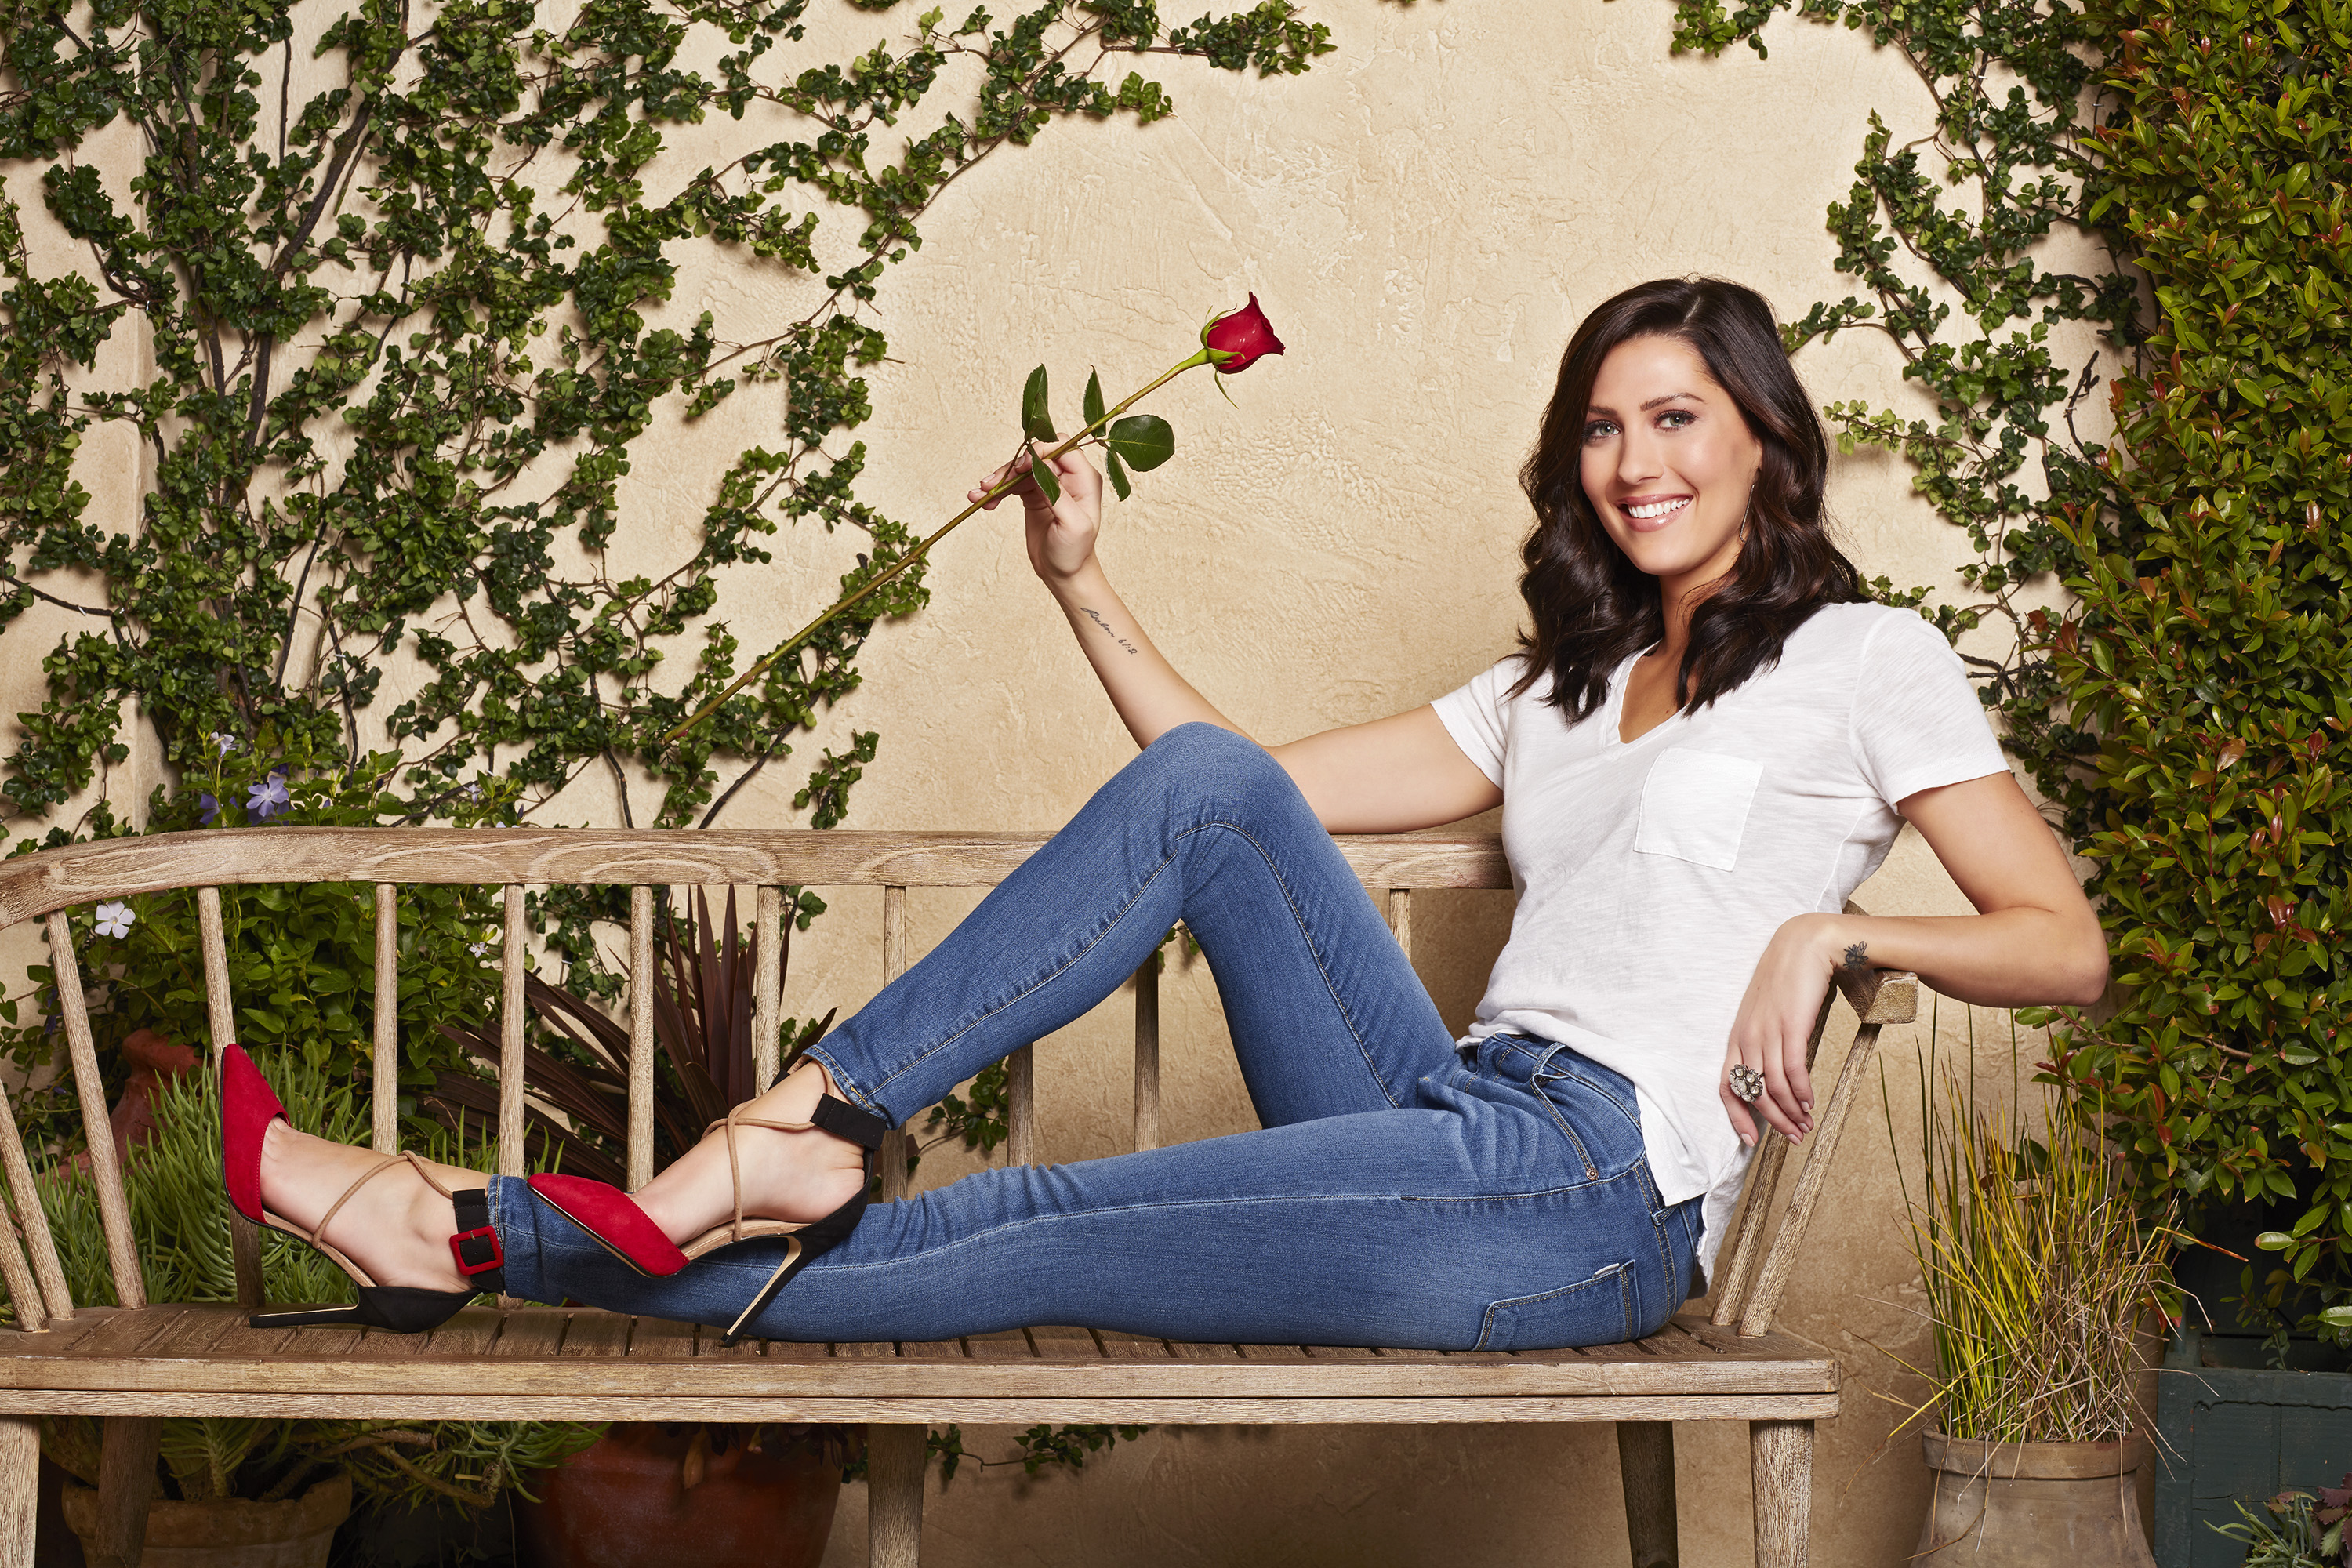 Becca Kufrin returns for a second shot at love, starring on The Bachelorette, when it premieres for its 14th season.